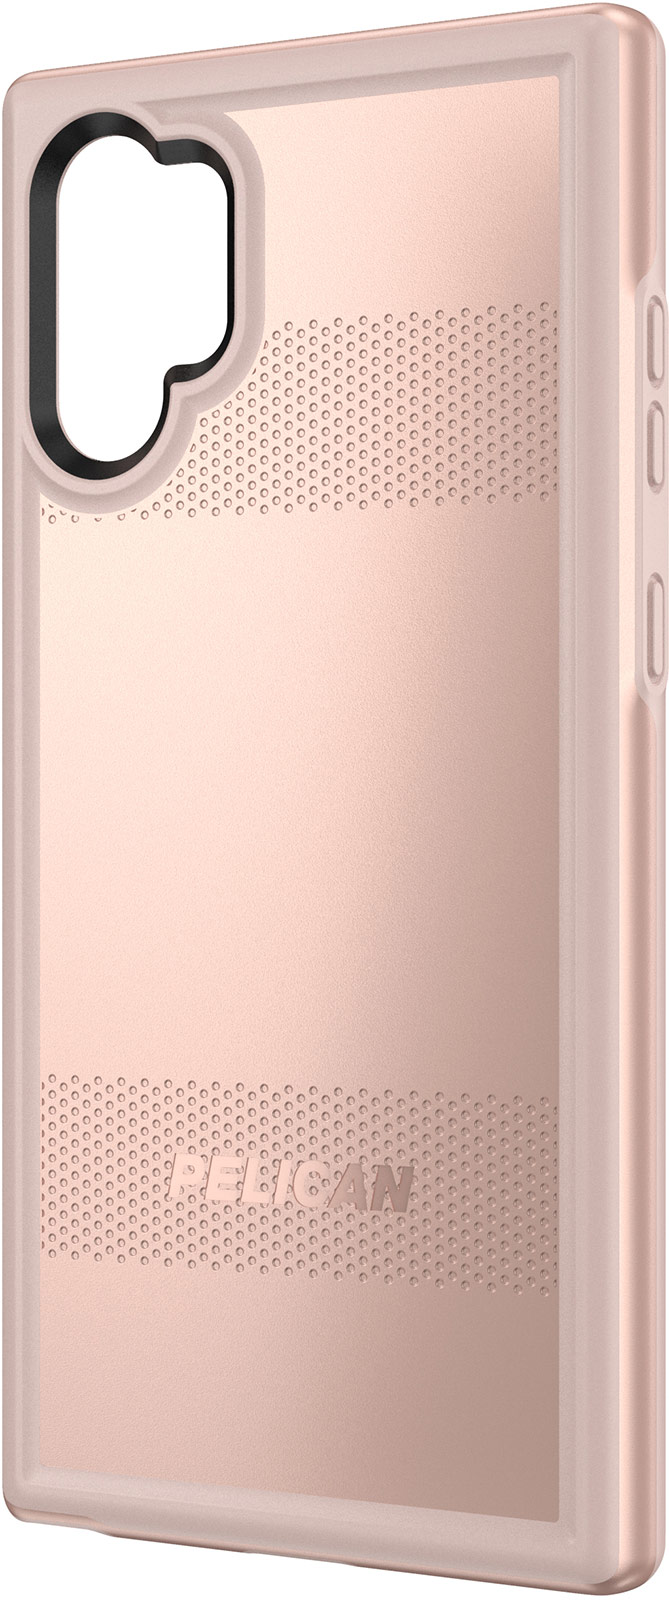 pelican galaxy note 10 protector rose gold phone case